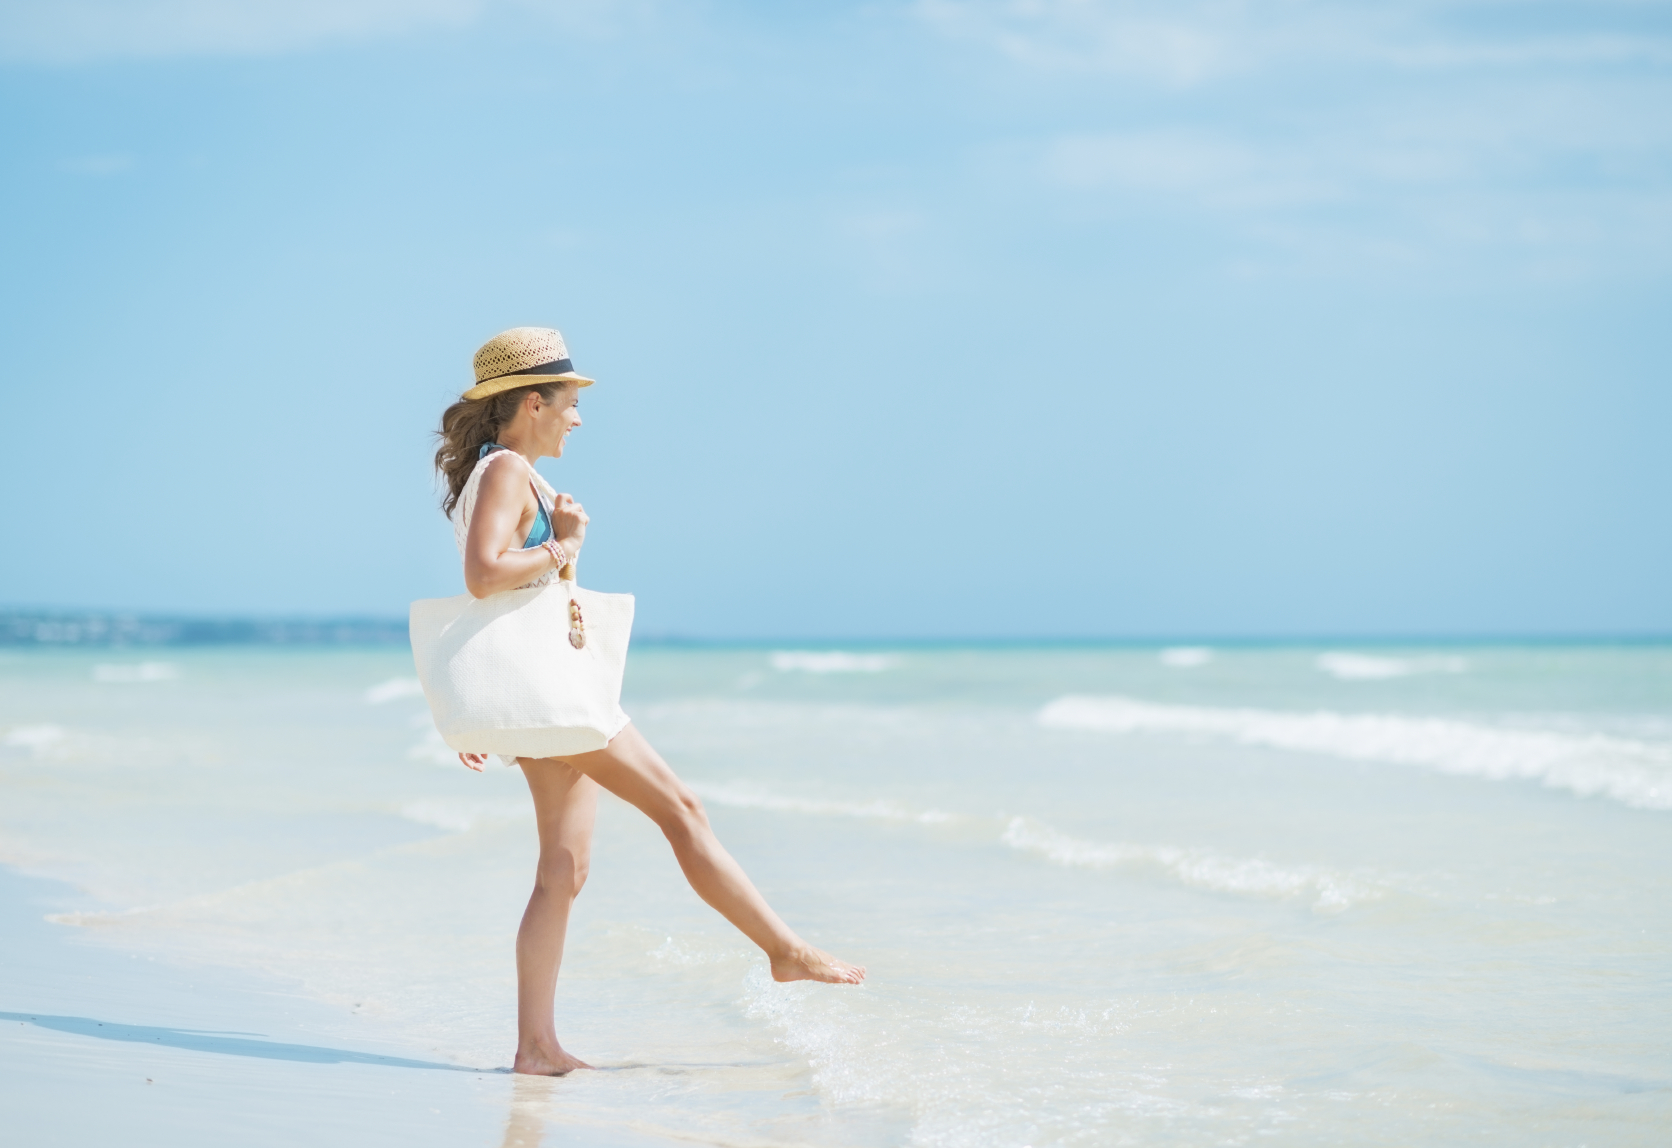 Young woman with hat and bag having fun time on sea coast